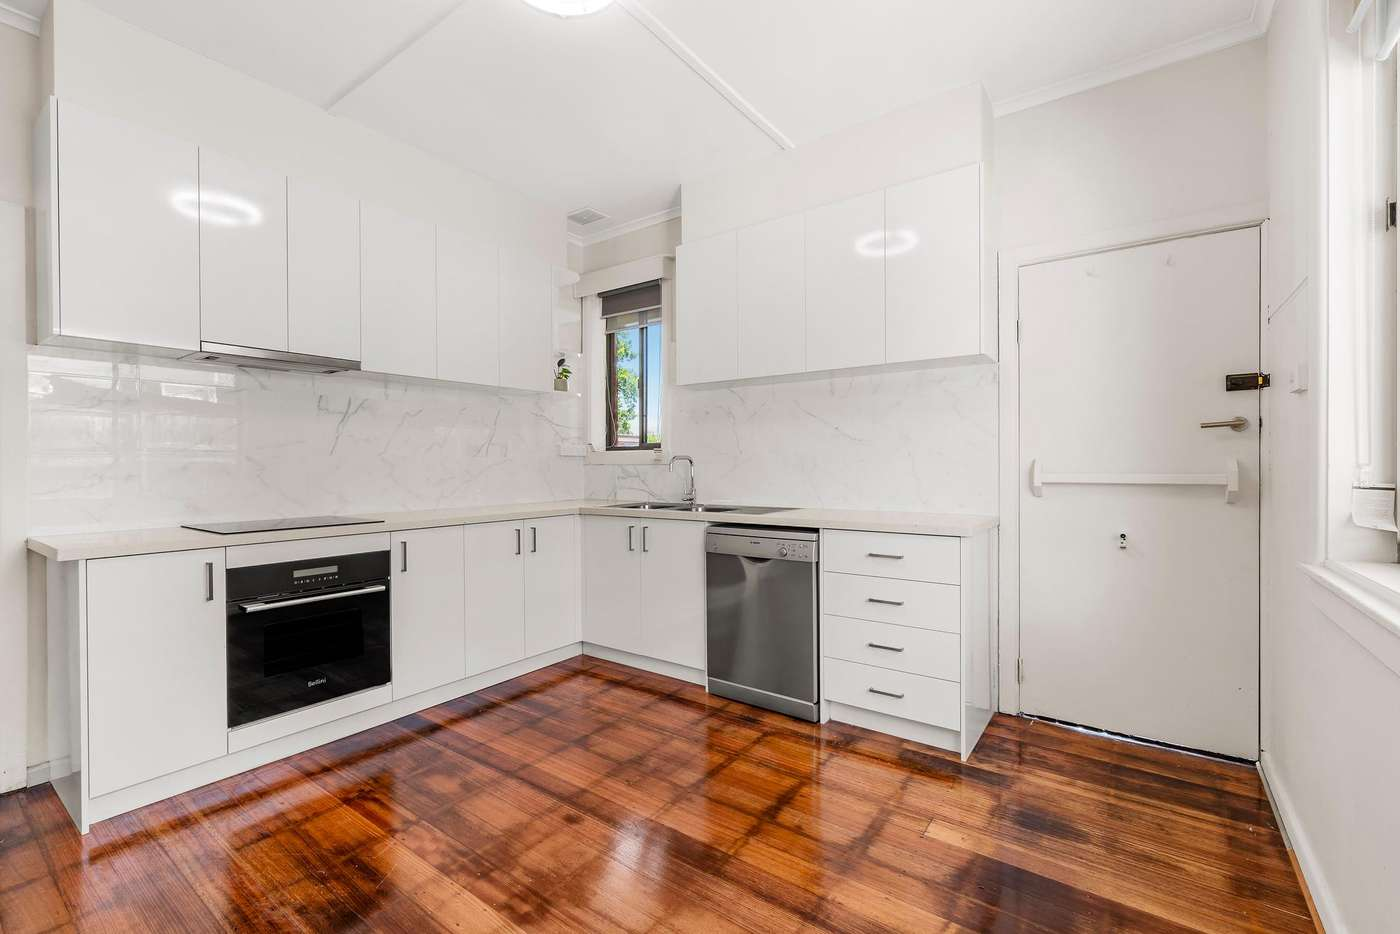 Main view of Homely house listing, 38 Symons Street, Preston VIC 3072